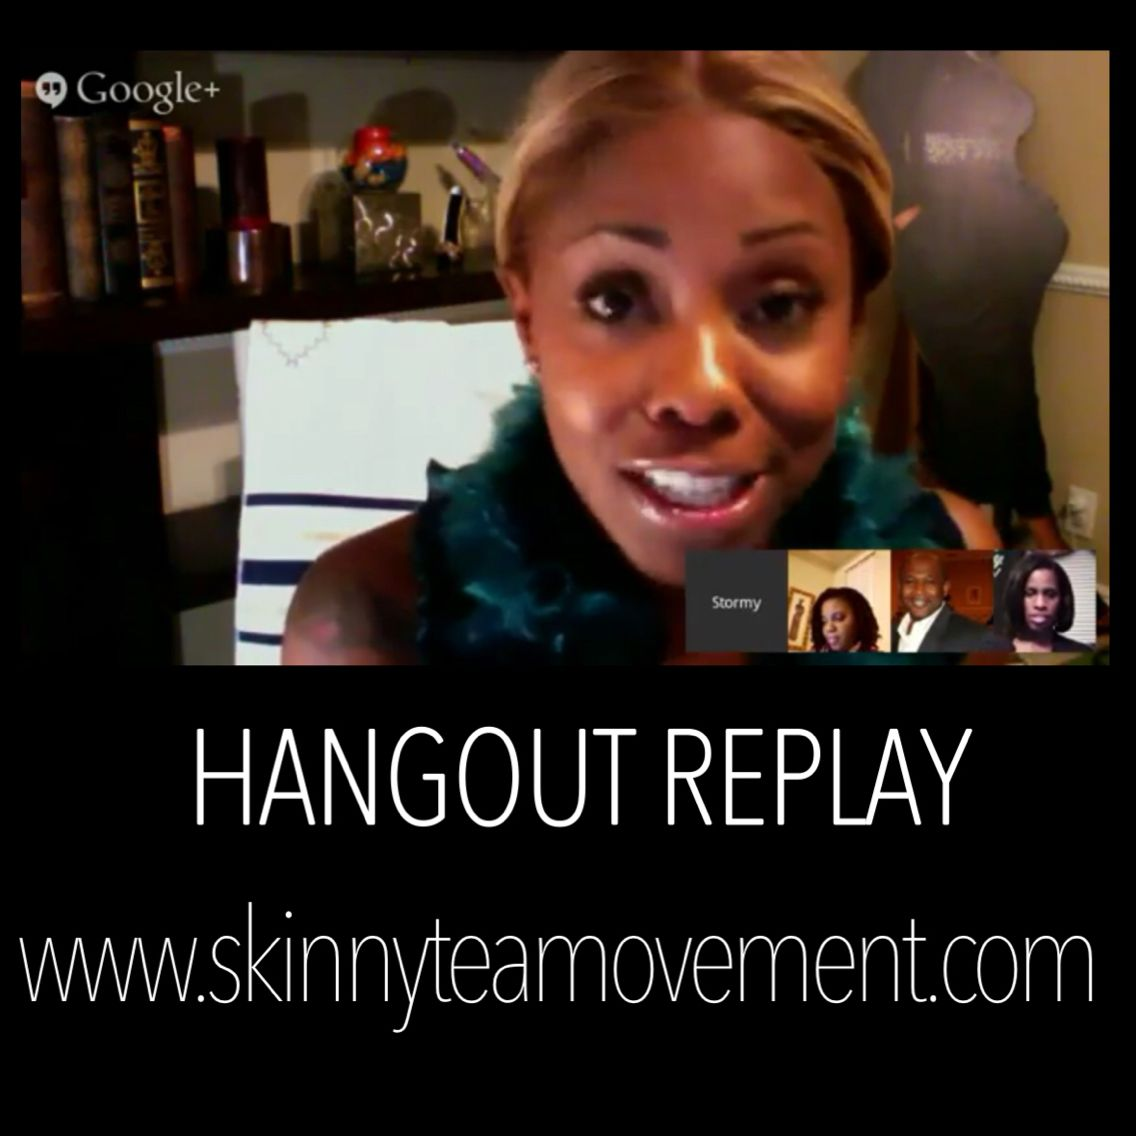 Hangout Replay. www.debraporterweightloss.info #GetSkinnTea #GetHealthTea #In2015 #Detox #WeightLoss ibo# 3191211 Text for any questions/answers 415-985-6790